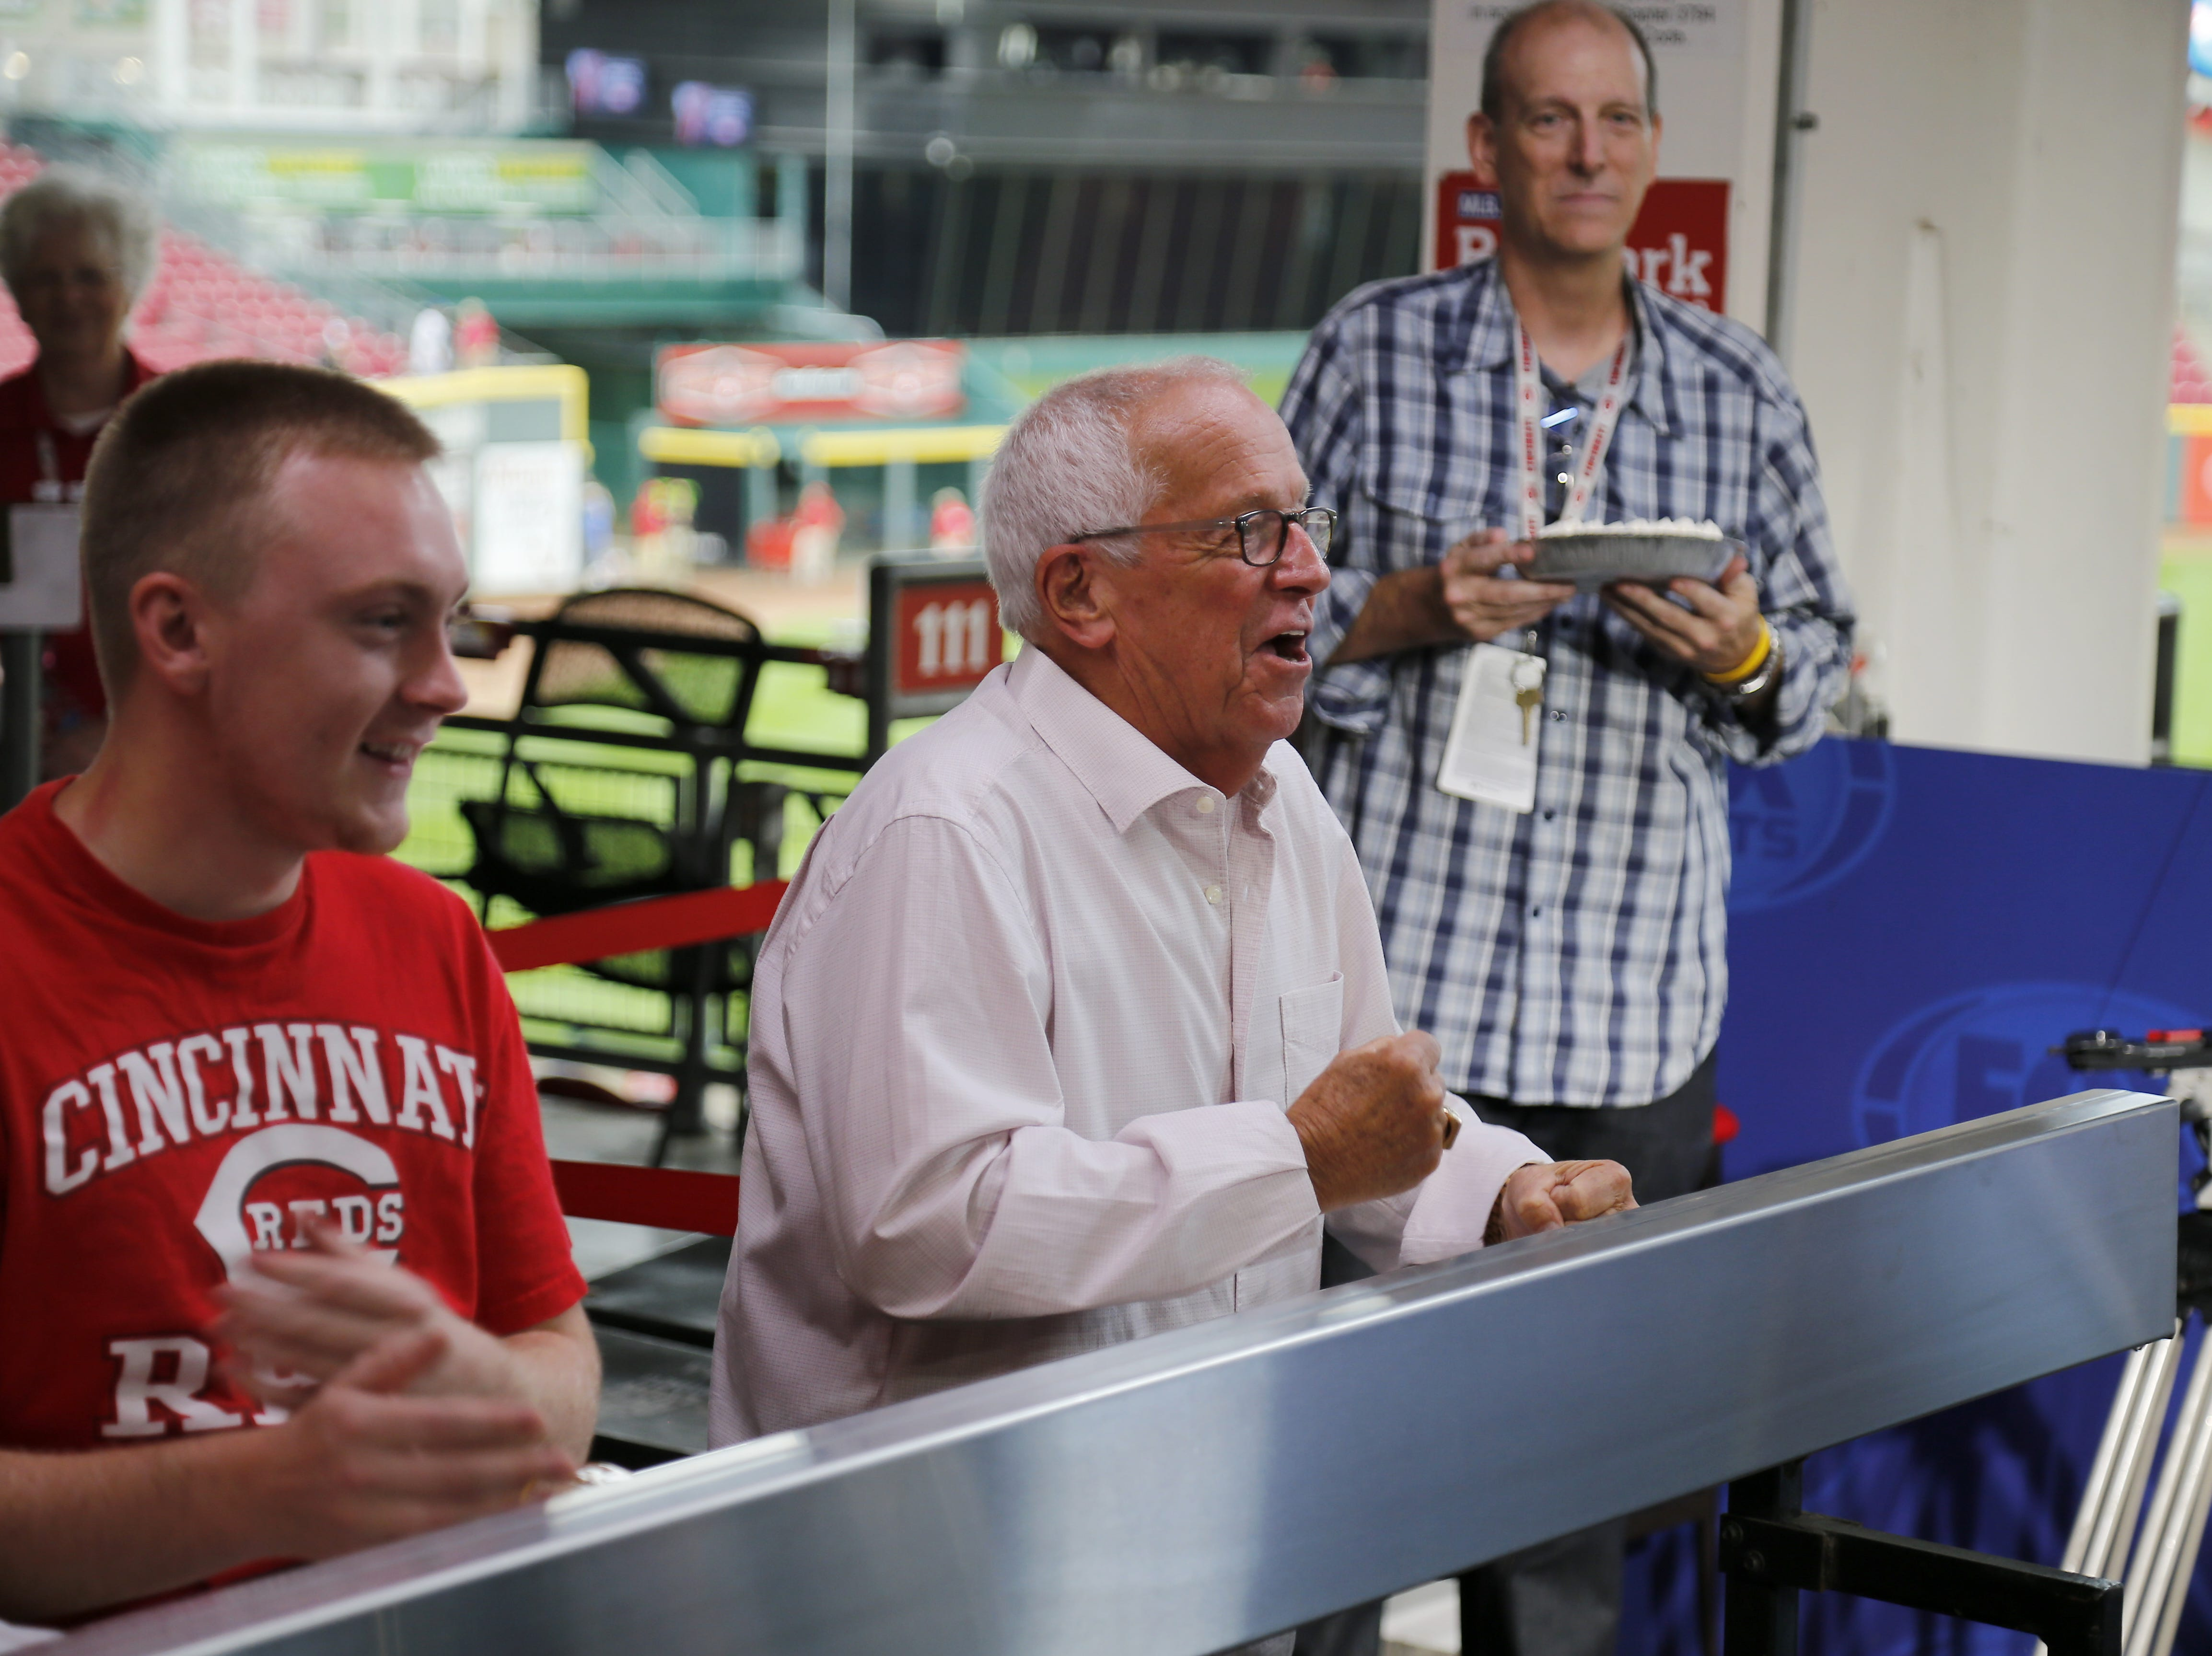 Reds broadcaster Marty Brennaman cheers before his partner Jeff Brantley receives a pie in the face from Jeff Piecoro before the MLB Interleague game between the Cincinnati Reds and the Kansas City Royals at Great American Ball Park in downtown Cincinnati on Tuesday, Sept. 25, 2018.